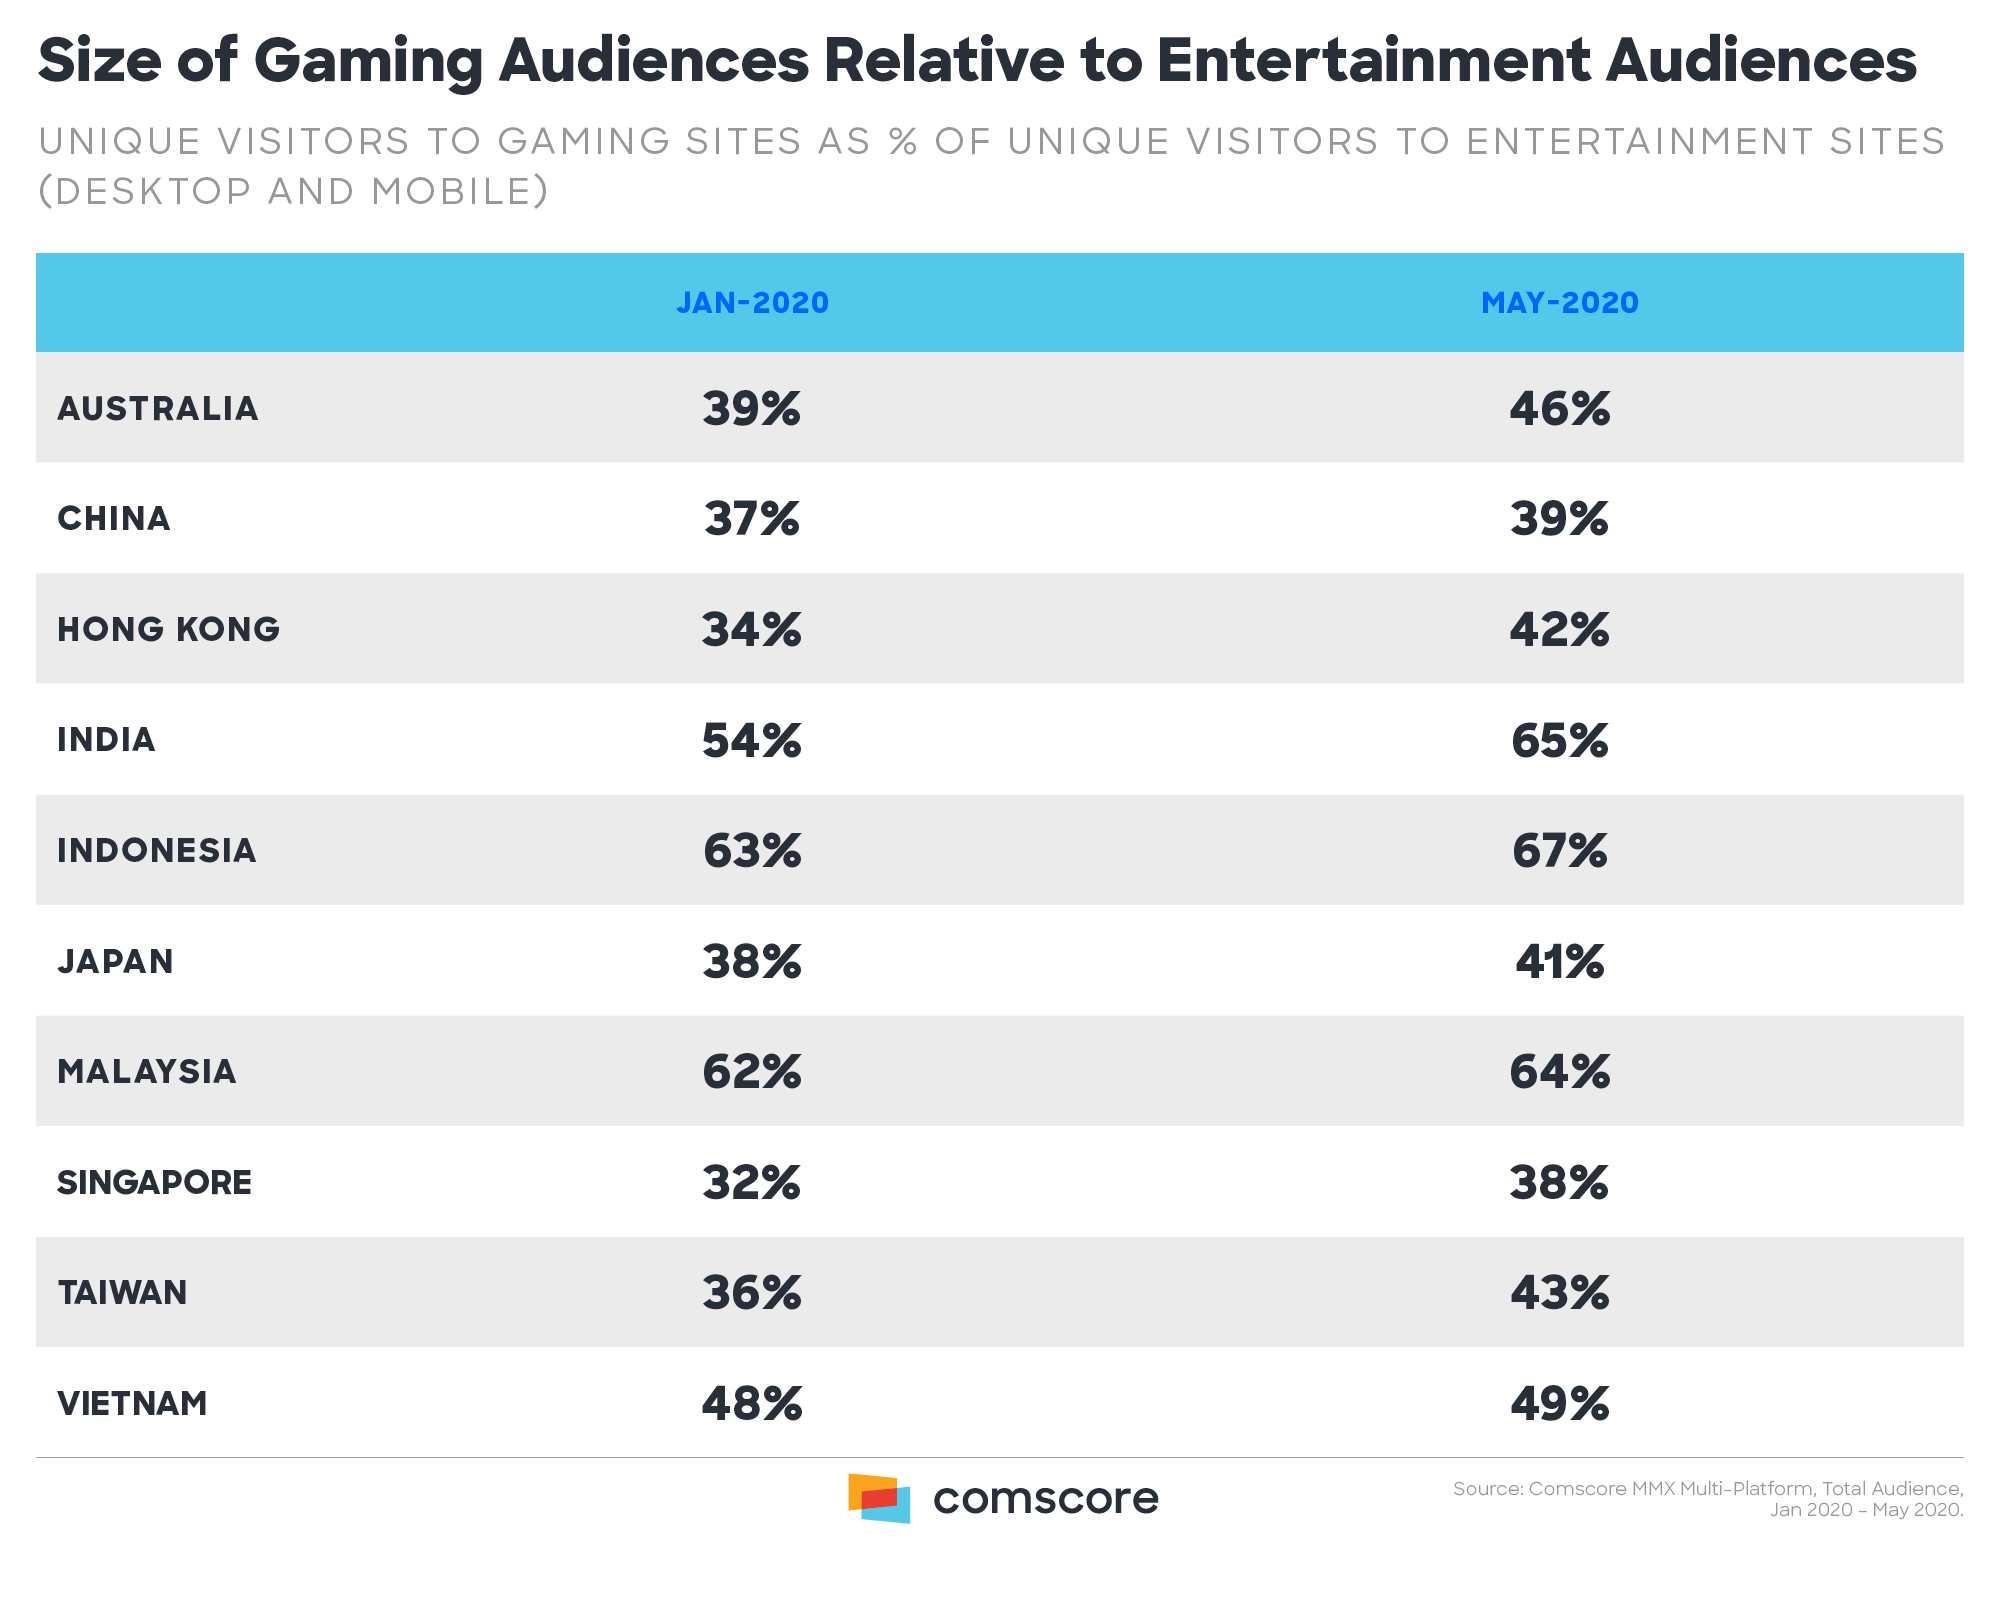 Size of Gaming Audiences Relative to Entertainment Audiences